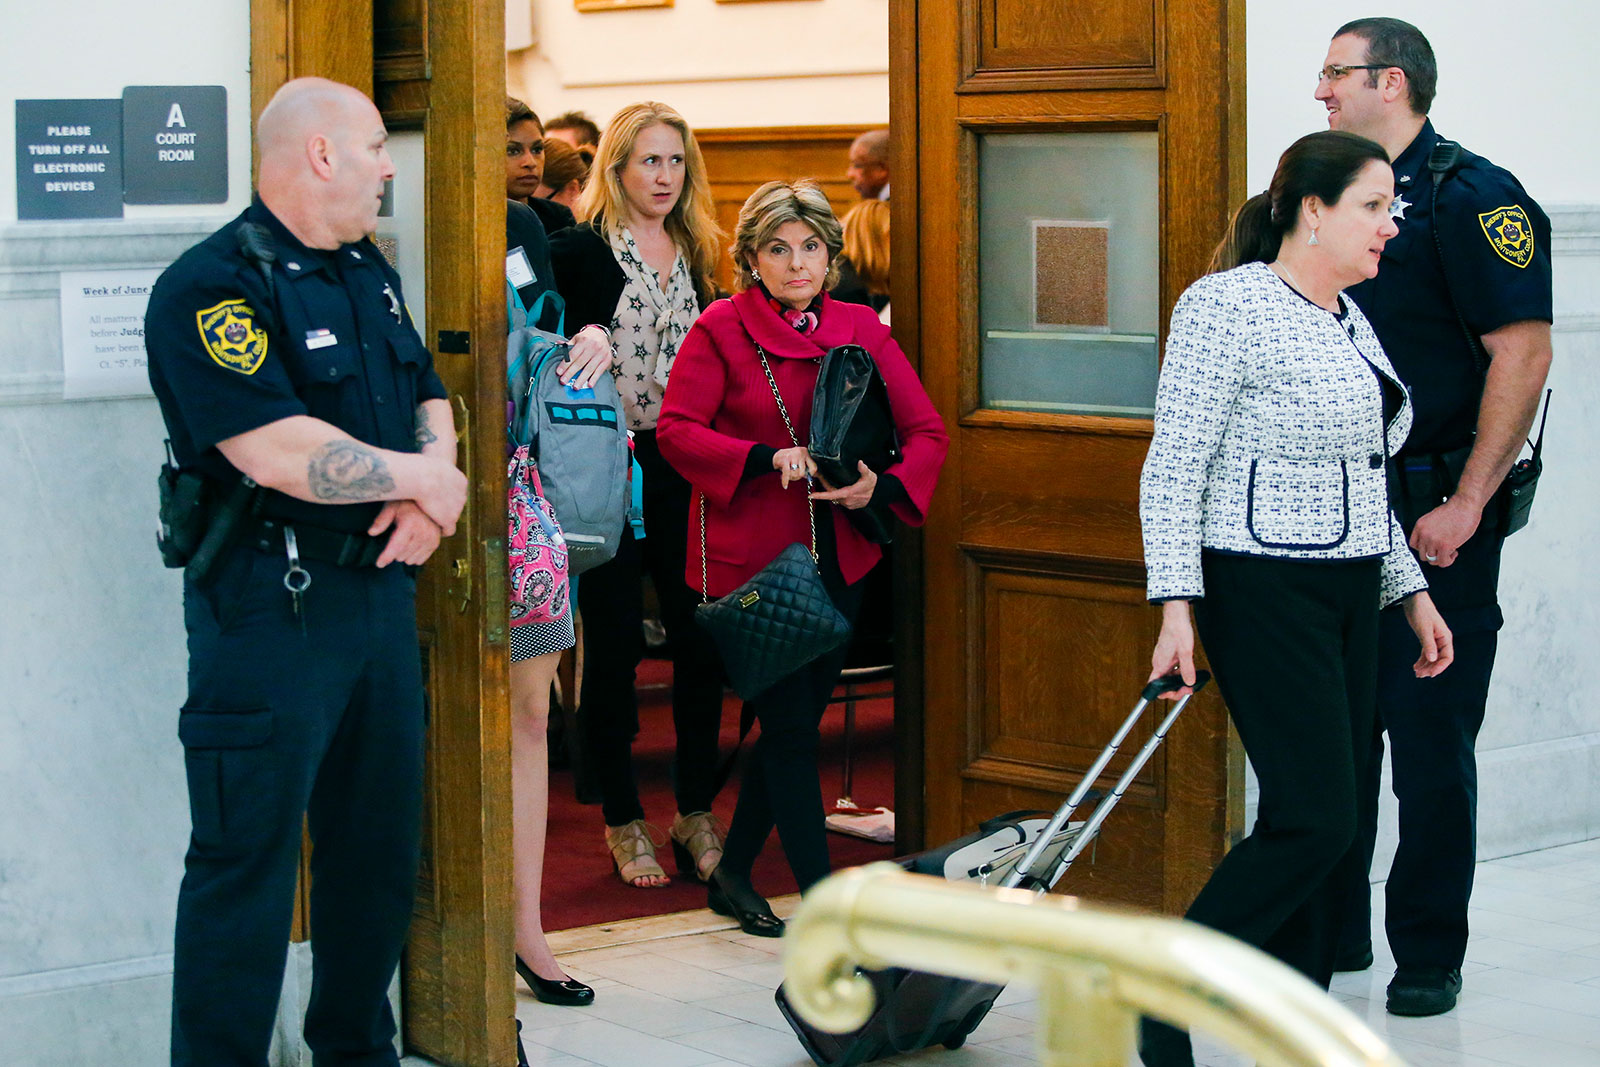 Attorney Gloria Allred, center, walks out of the courtroom at Montgomery County courthouse during Bill Cosby's trial in 2017.